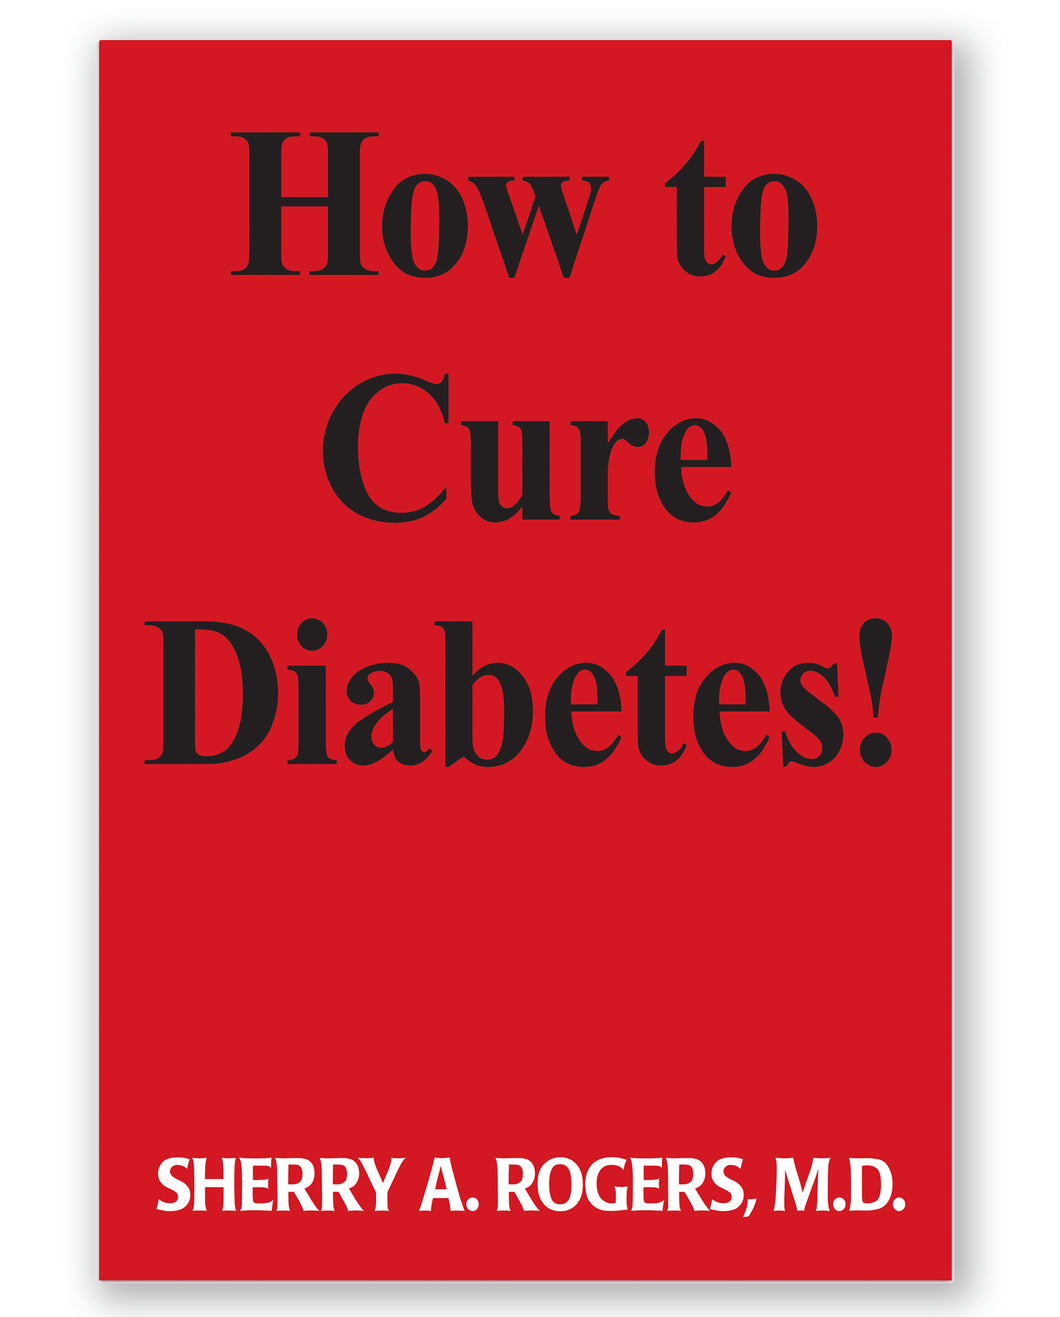 How to Cure Diabetes! by Sherry A. Rogers M.D.